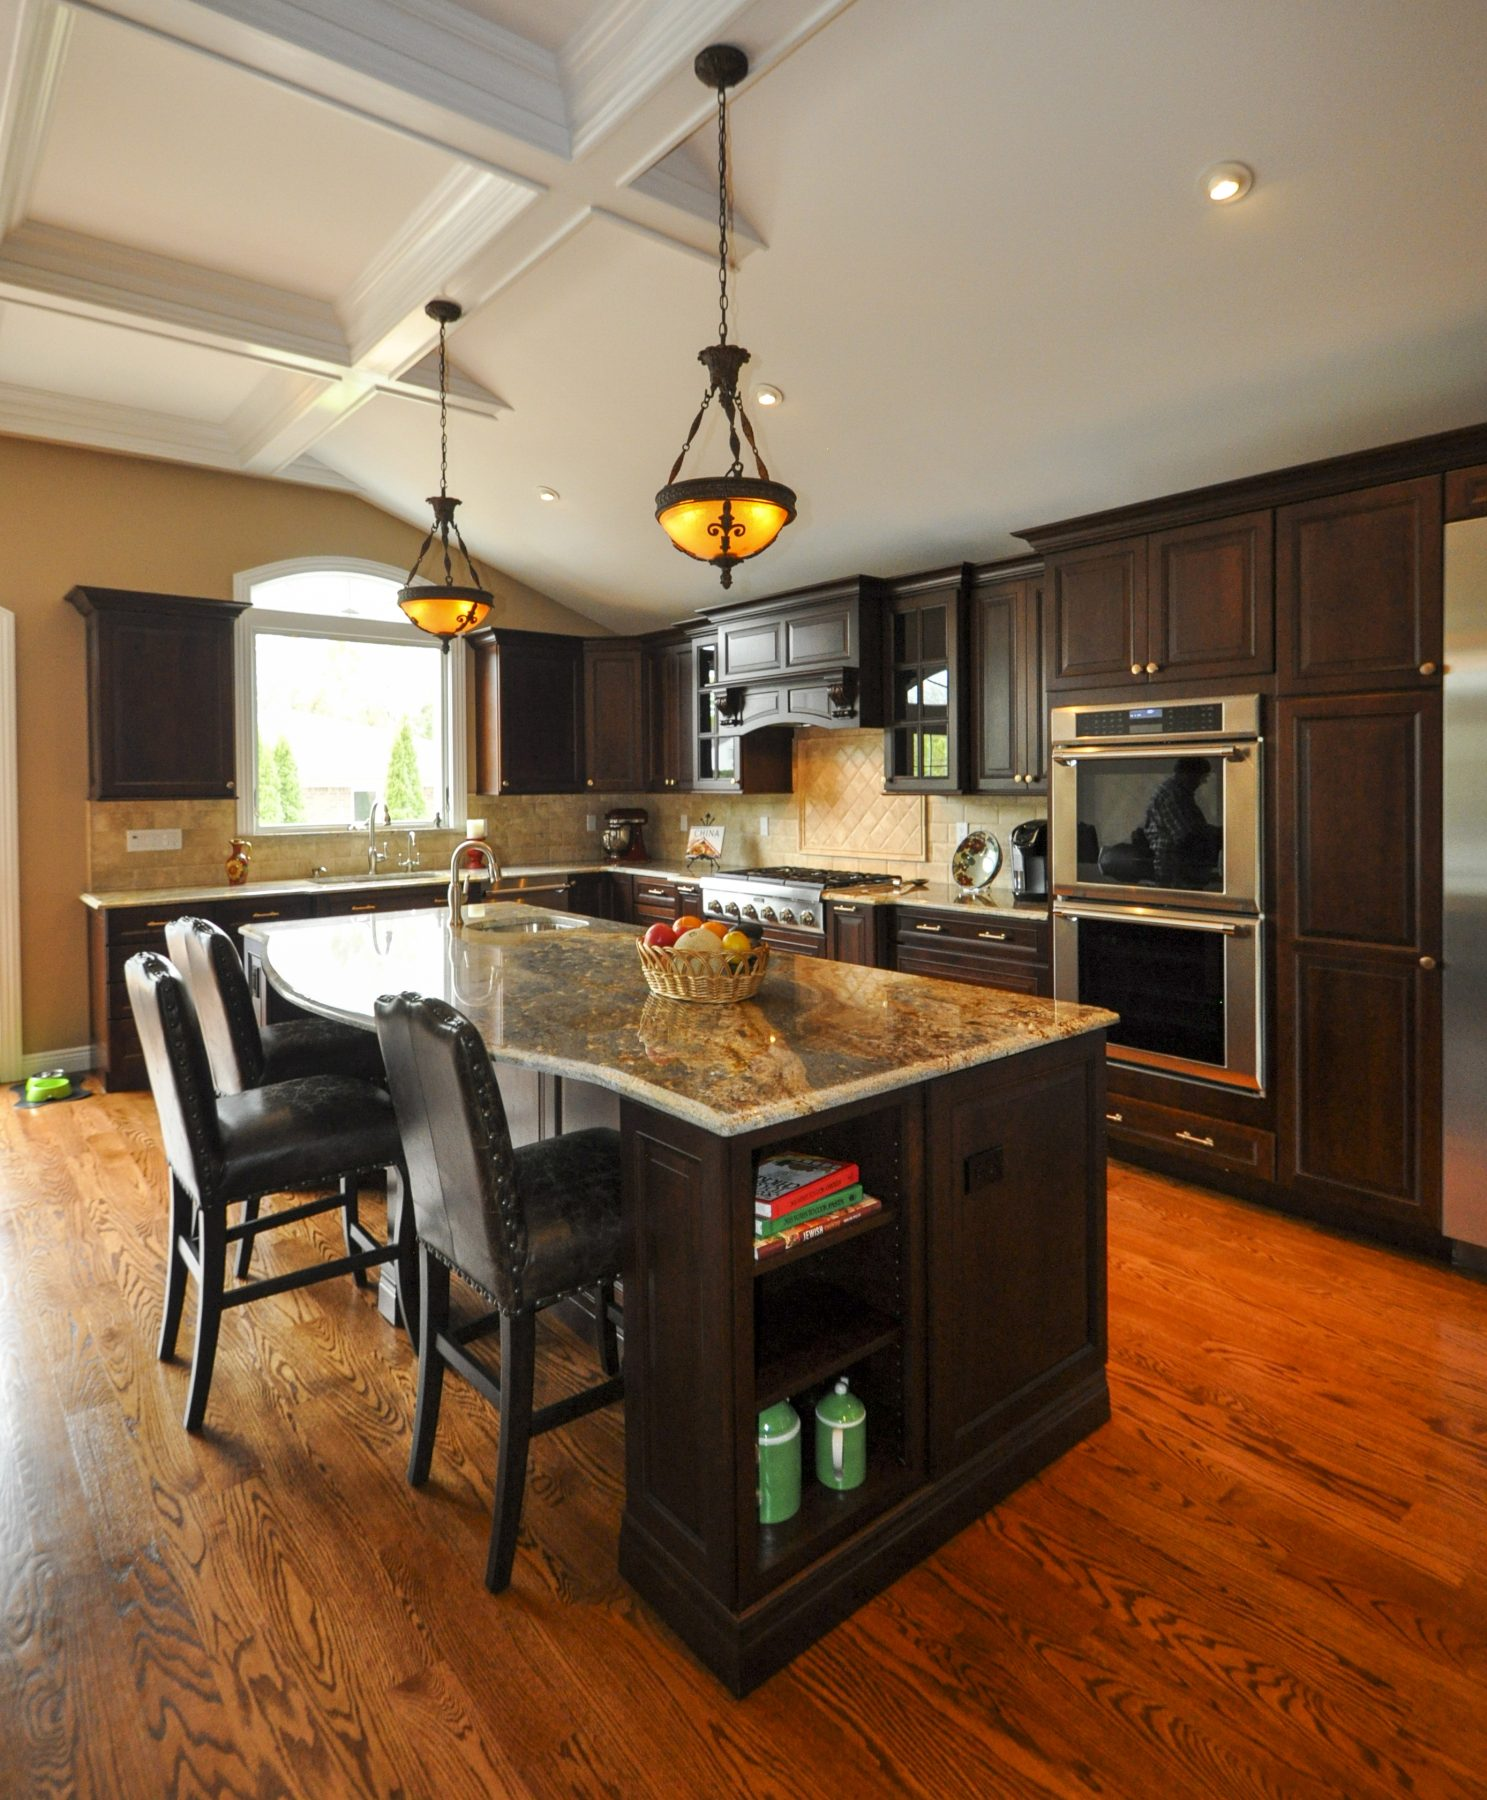 Kitchen Island Additions: Remodeling Contractors